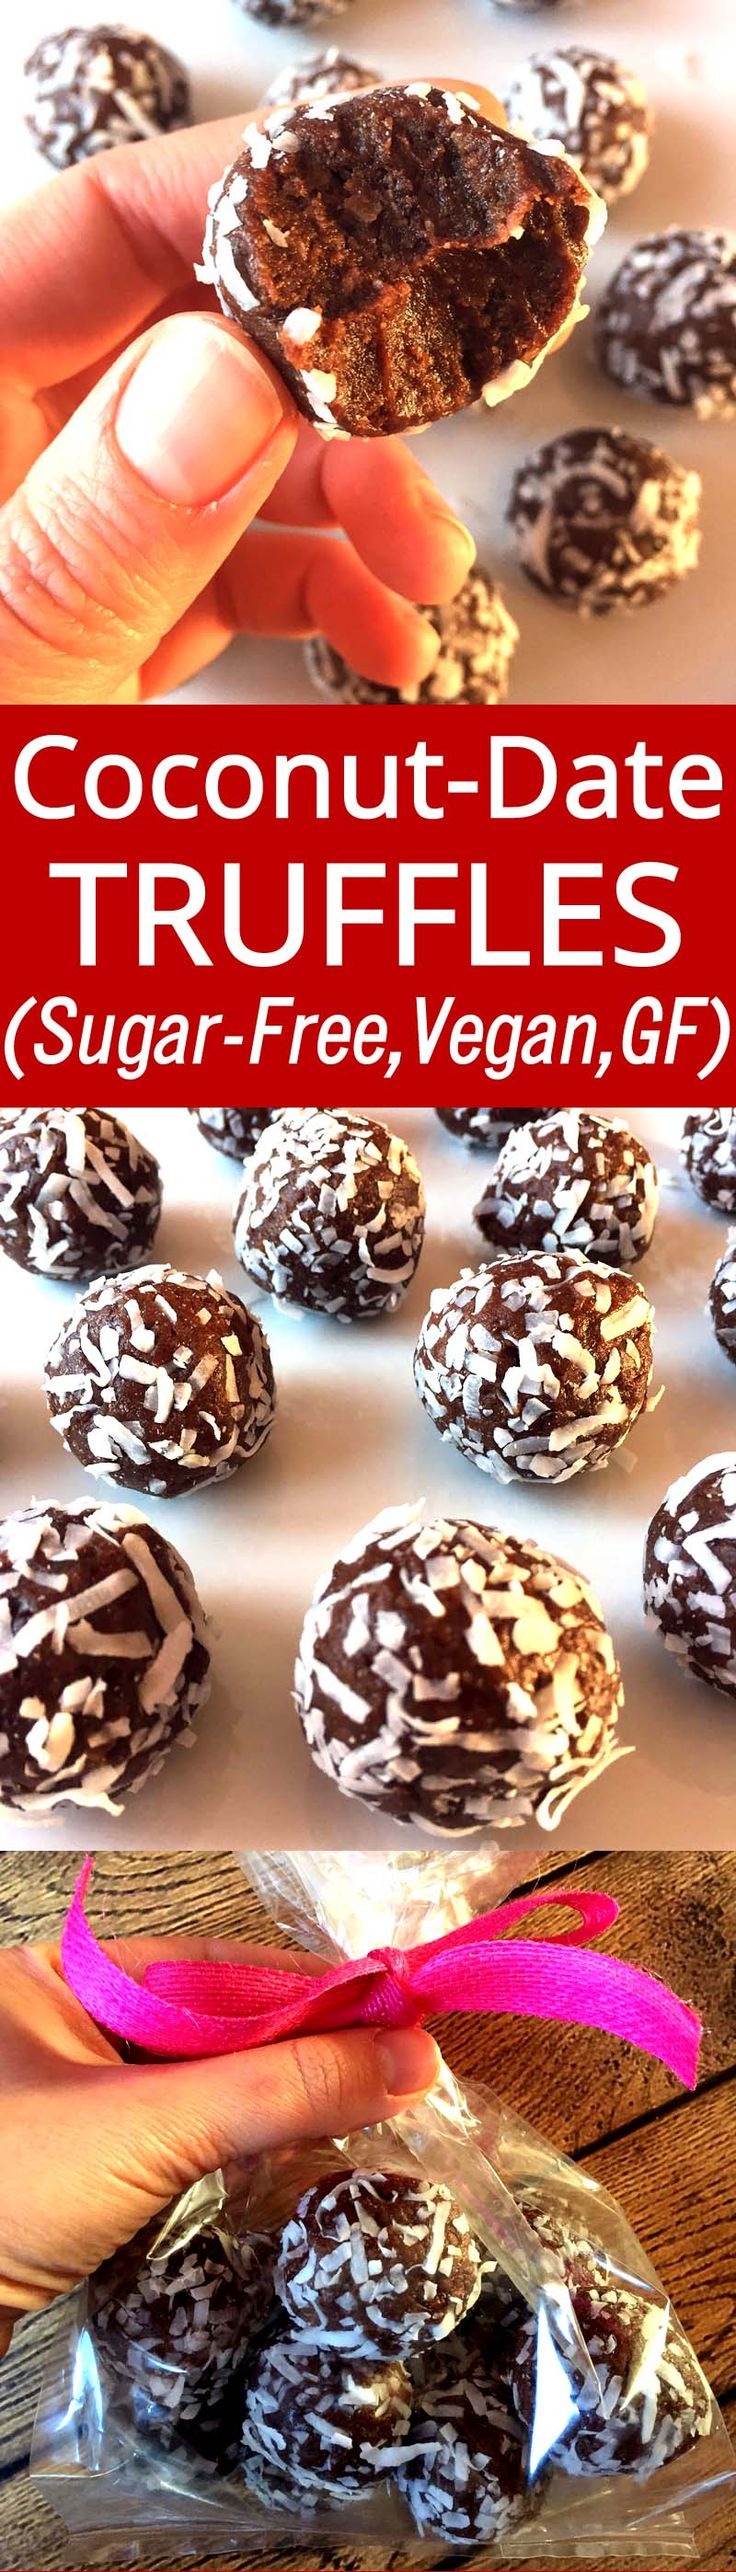 HEALTHY TRUFFLES! These amazing coconut date truffles are sugar-free, raw, vegan, gluten-free and so good for you!   MelanieCooks.com